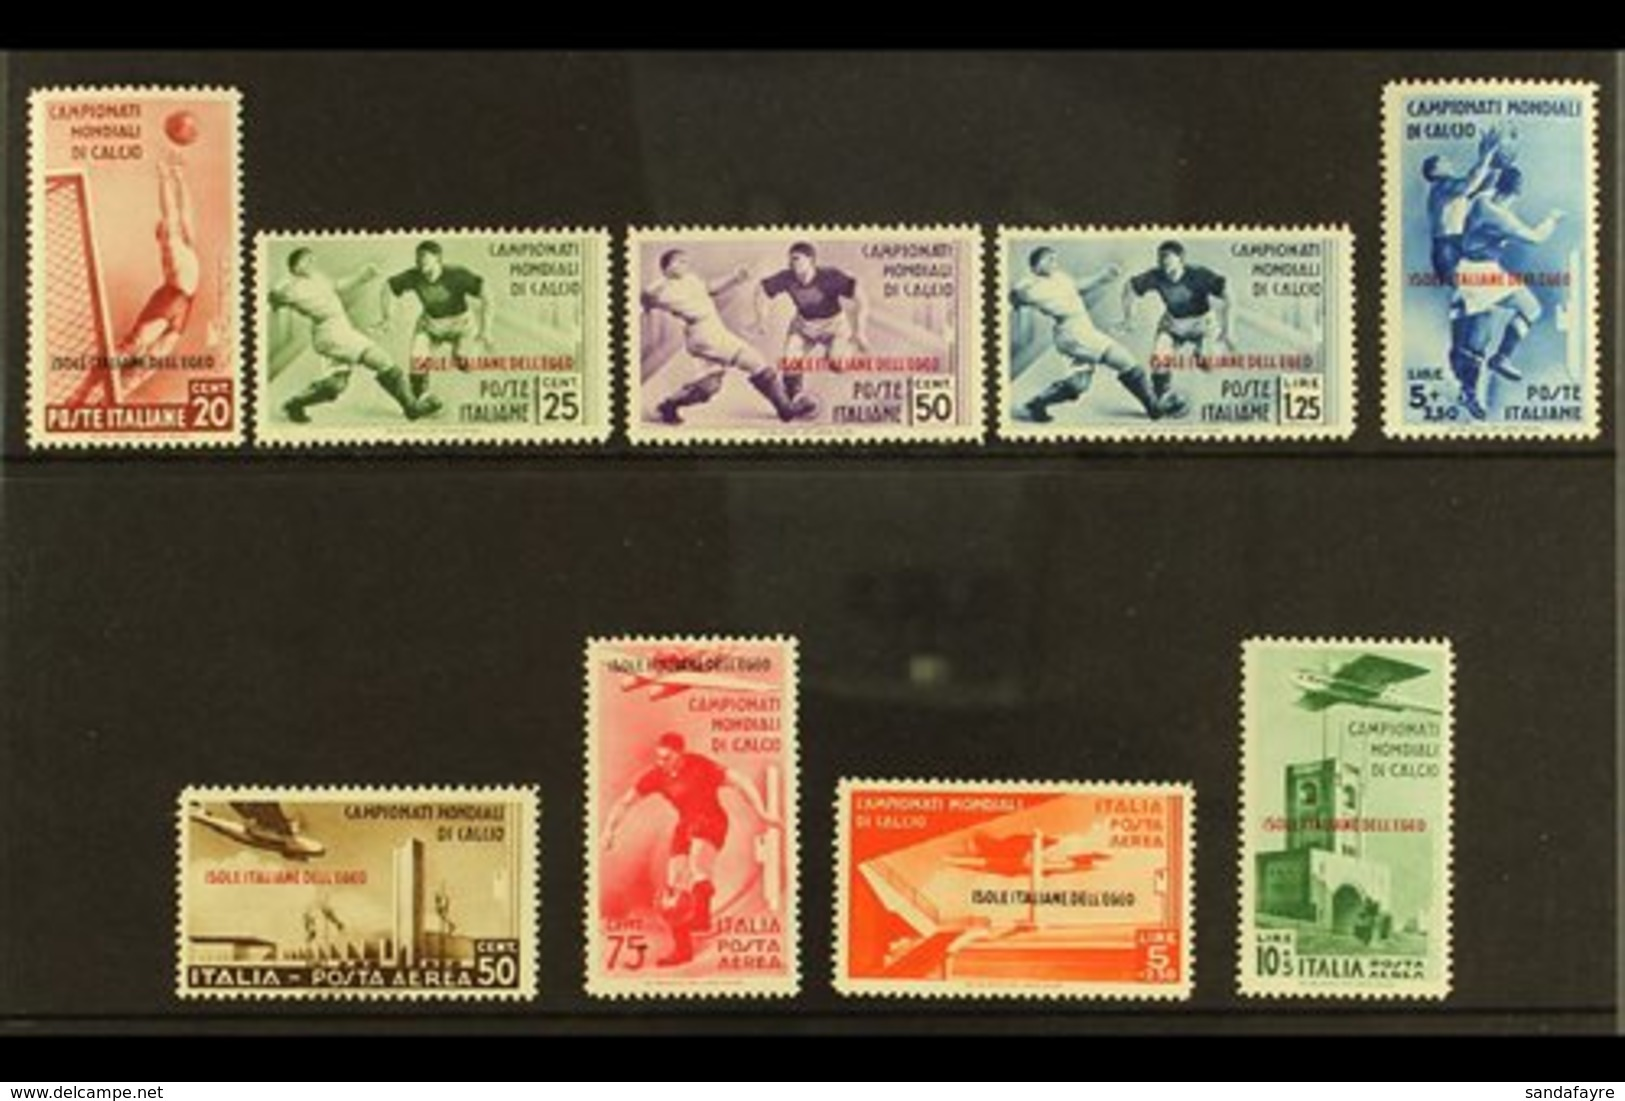 DODECANESE ISLANDS AEGEAN ISLANDS - EGEO 1934 Football Complete Set Inc Airs (Sassone 75/79 & A34/37, SG 128/36), Fine M - Italy